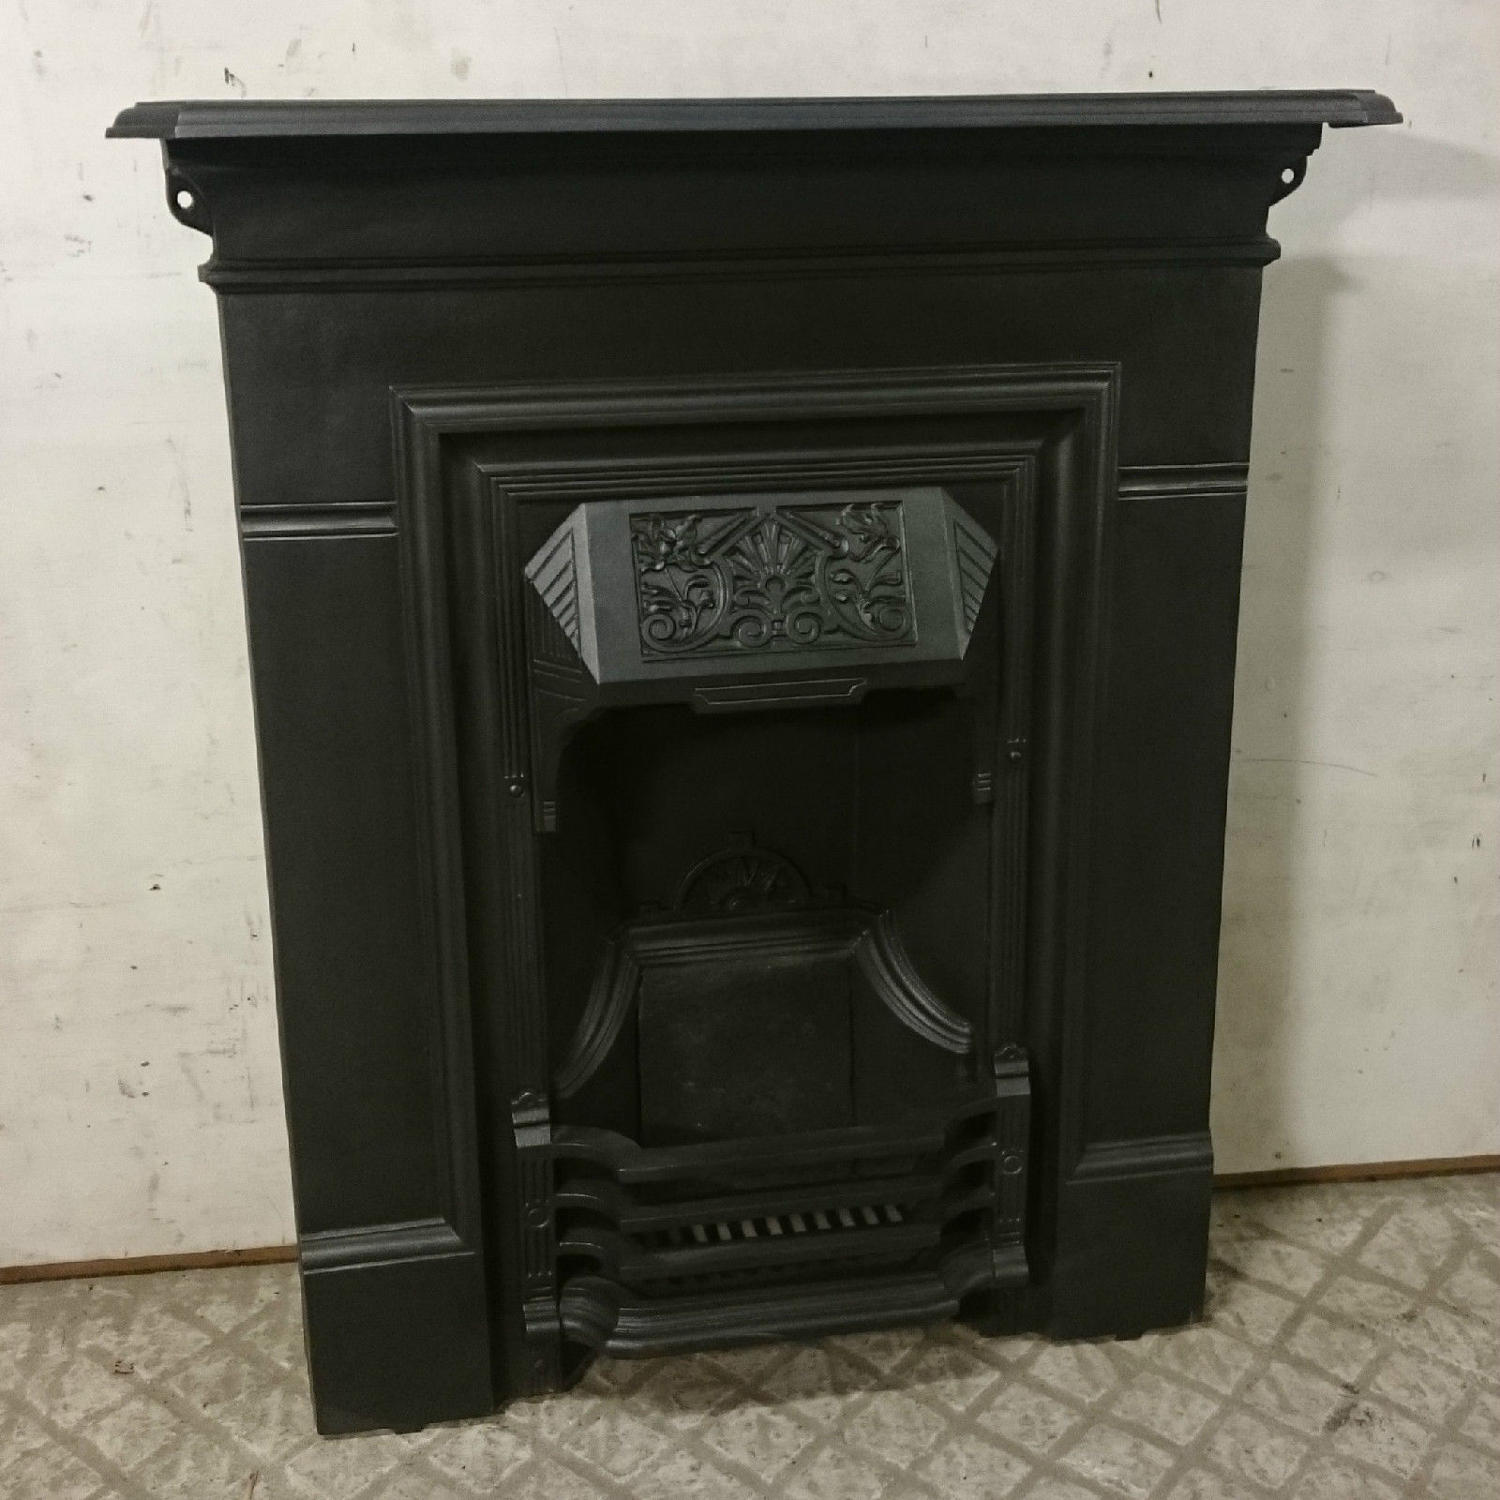 FC0021 An Ornate Antique Cast Iron Combination Fire